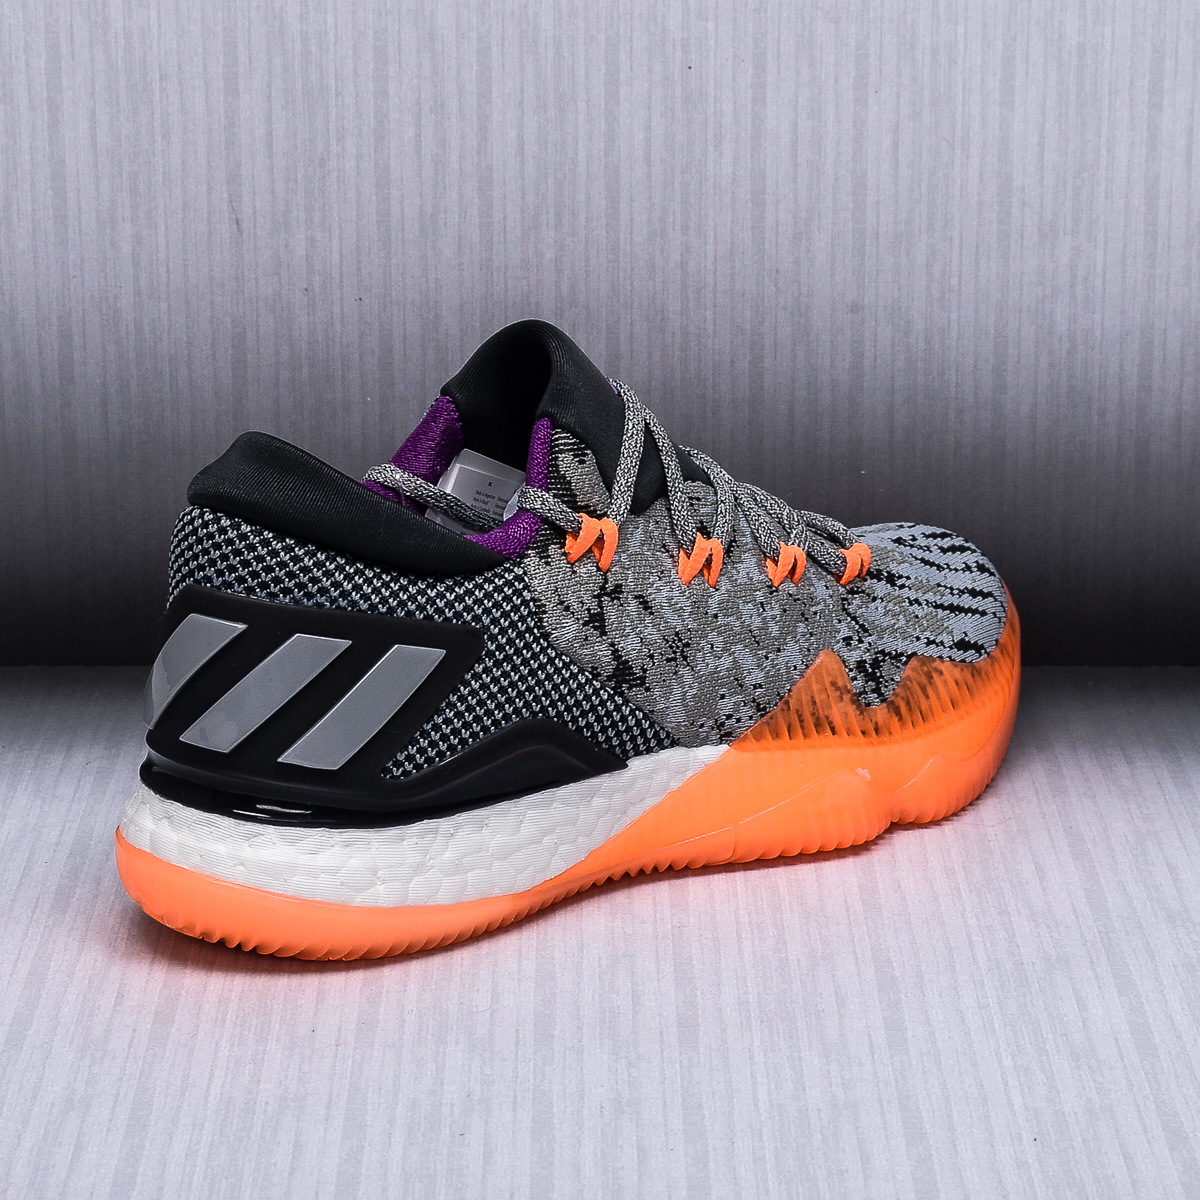 adidas Crazylight Boost 2016 Low Basketball Shoes ...